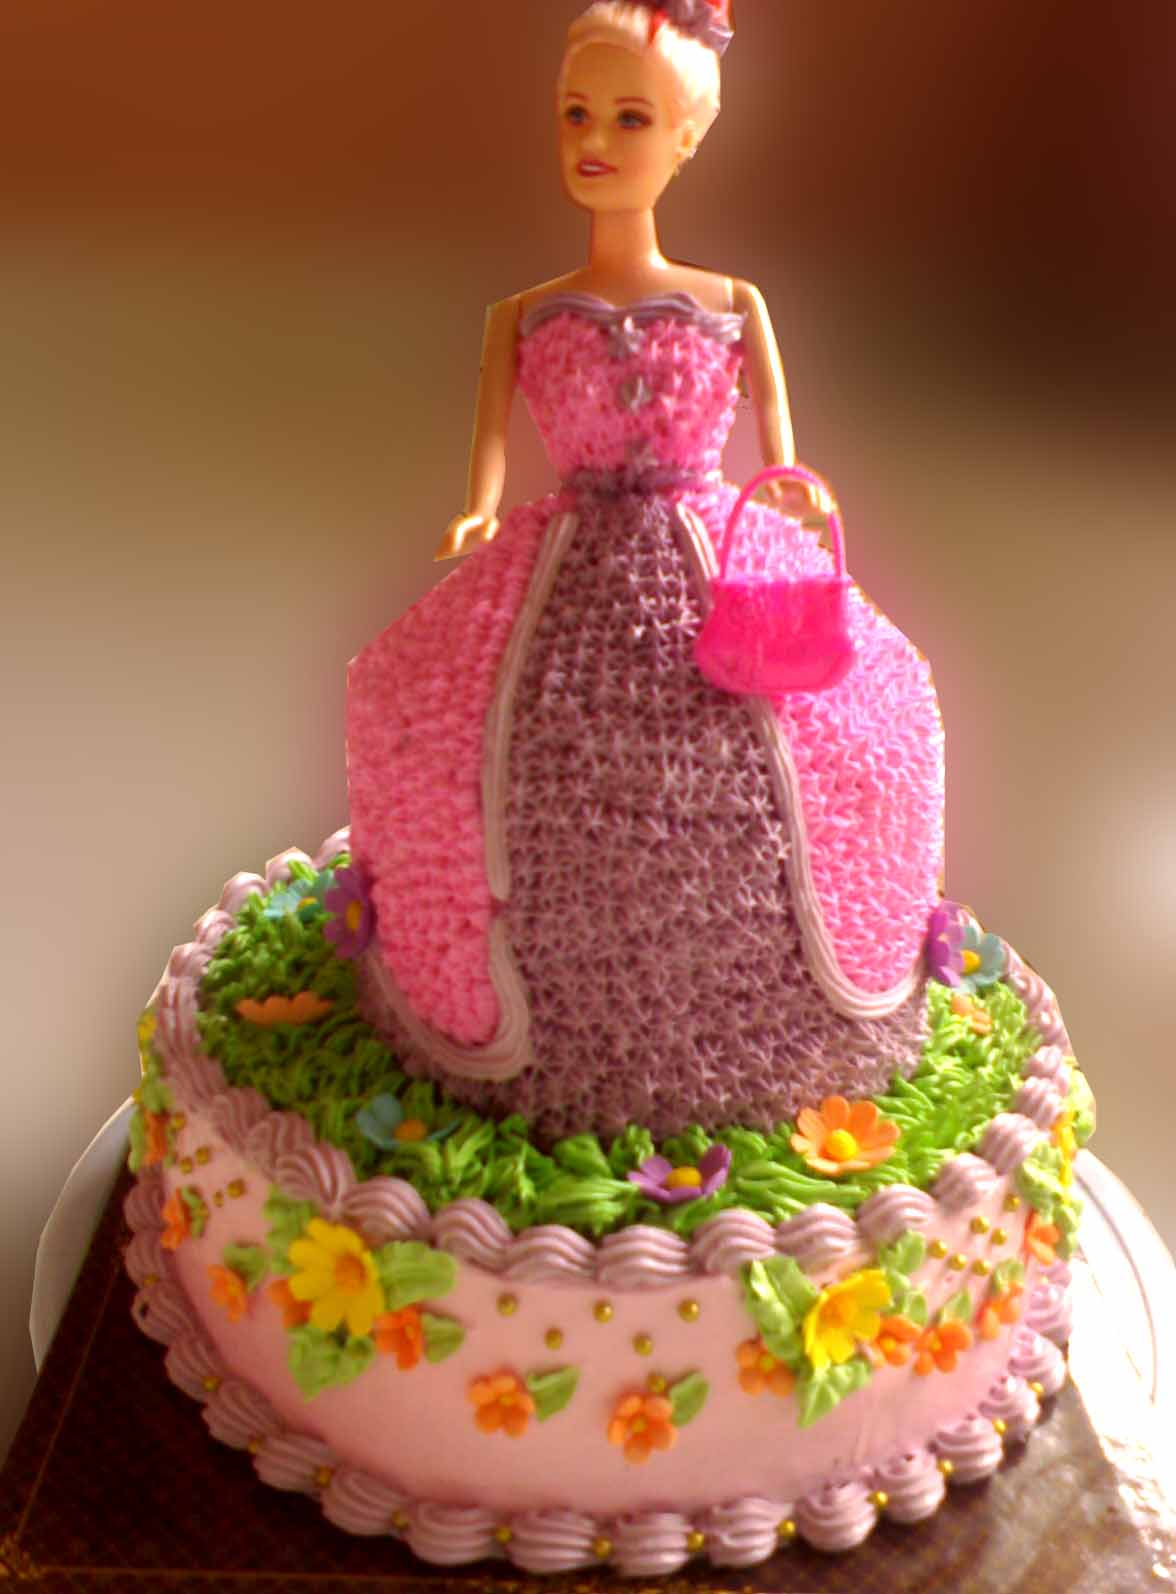 Cake Images Barbie : Birthday barbie cakes Birthday Party Ideas